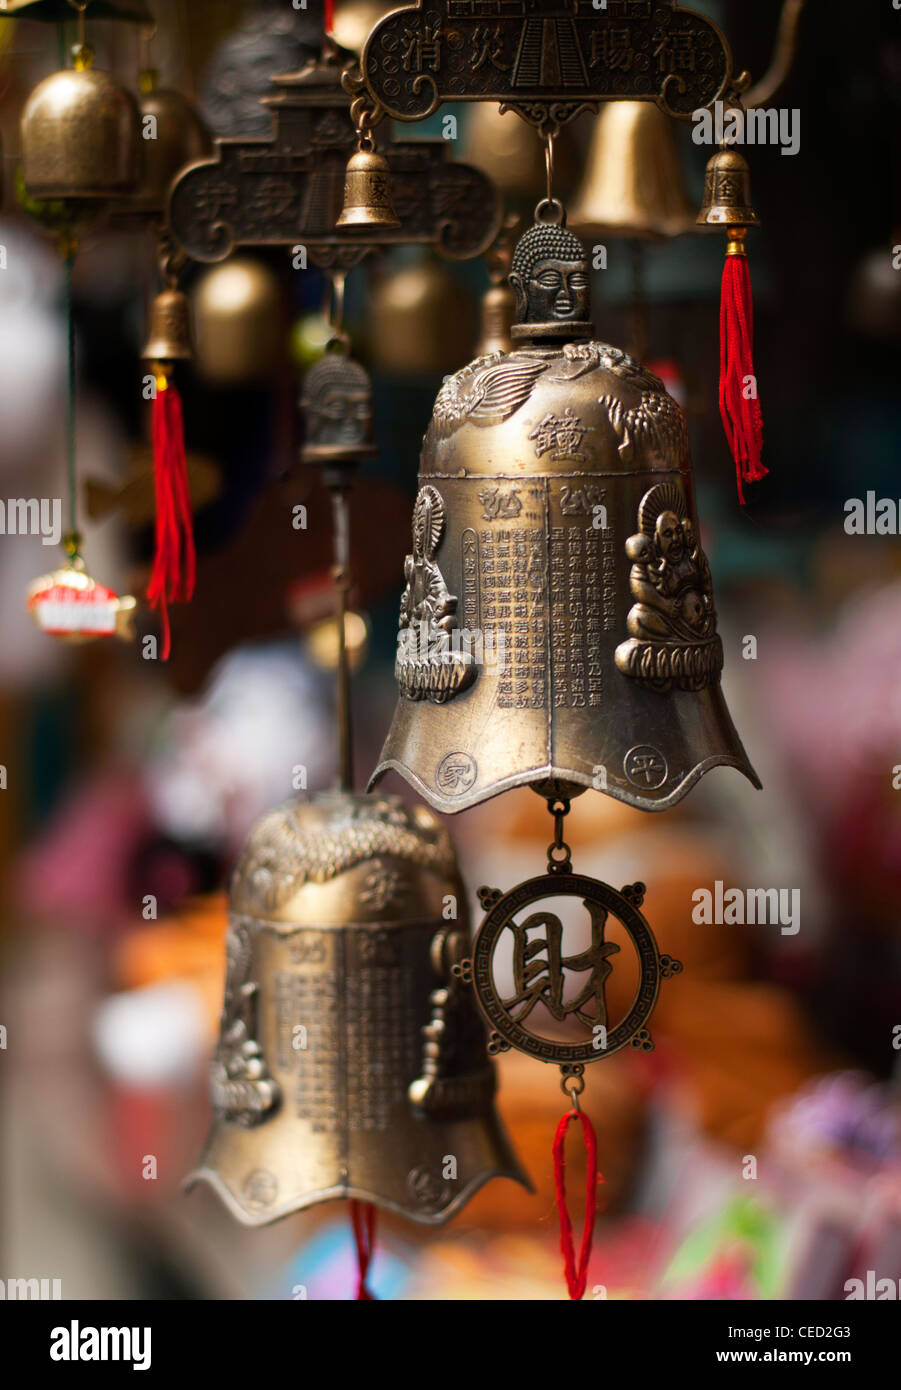 Traditional bells used in Eastern Asia - Stock Image